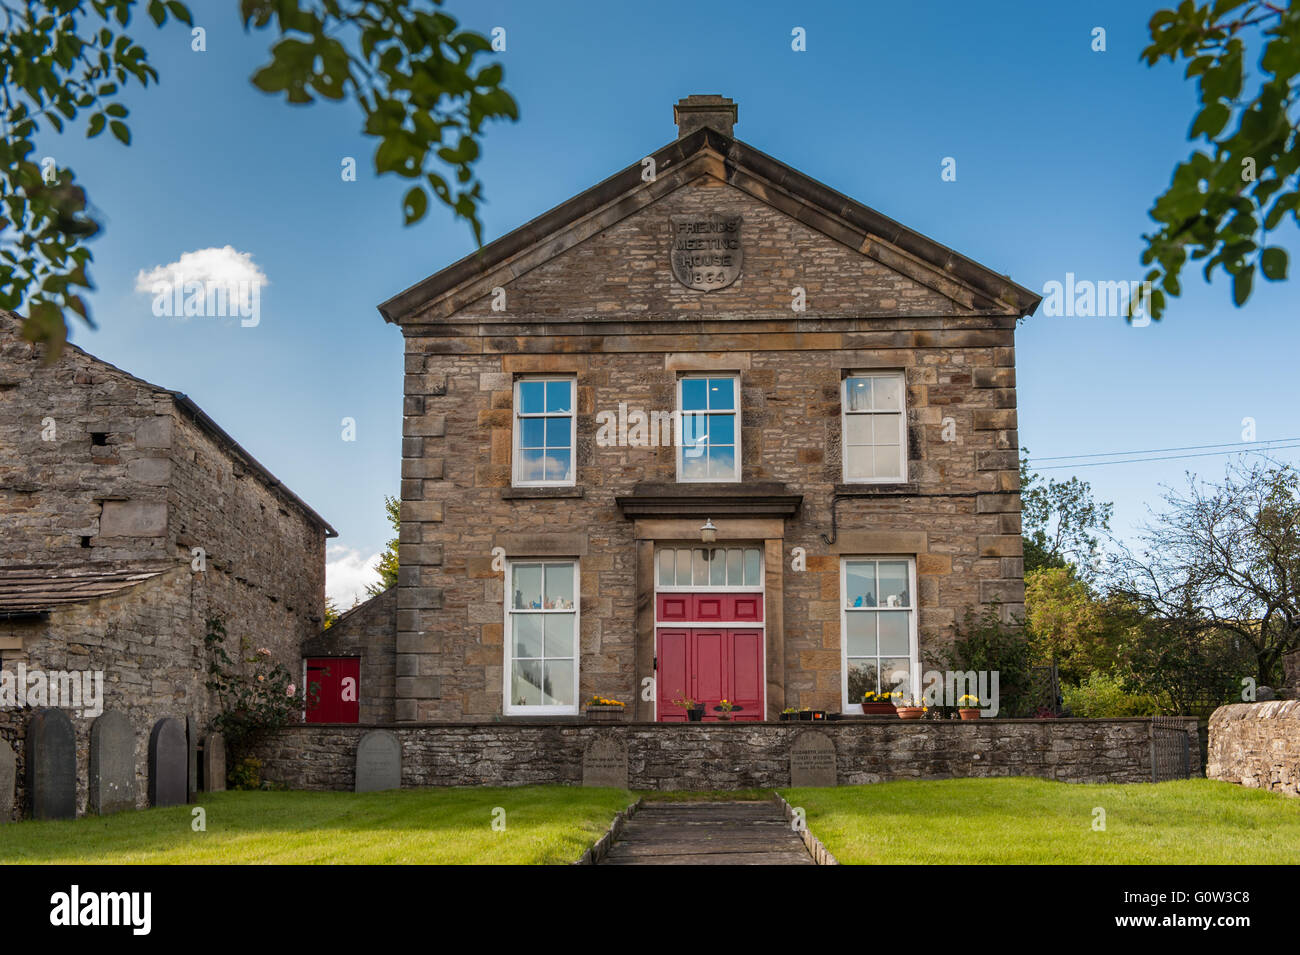 The Quaker Meeting House at Carperby in Wensleydale Stock Photo